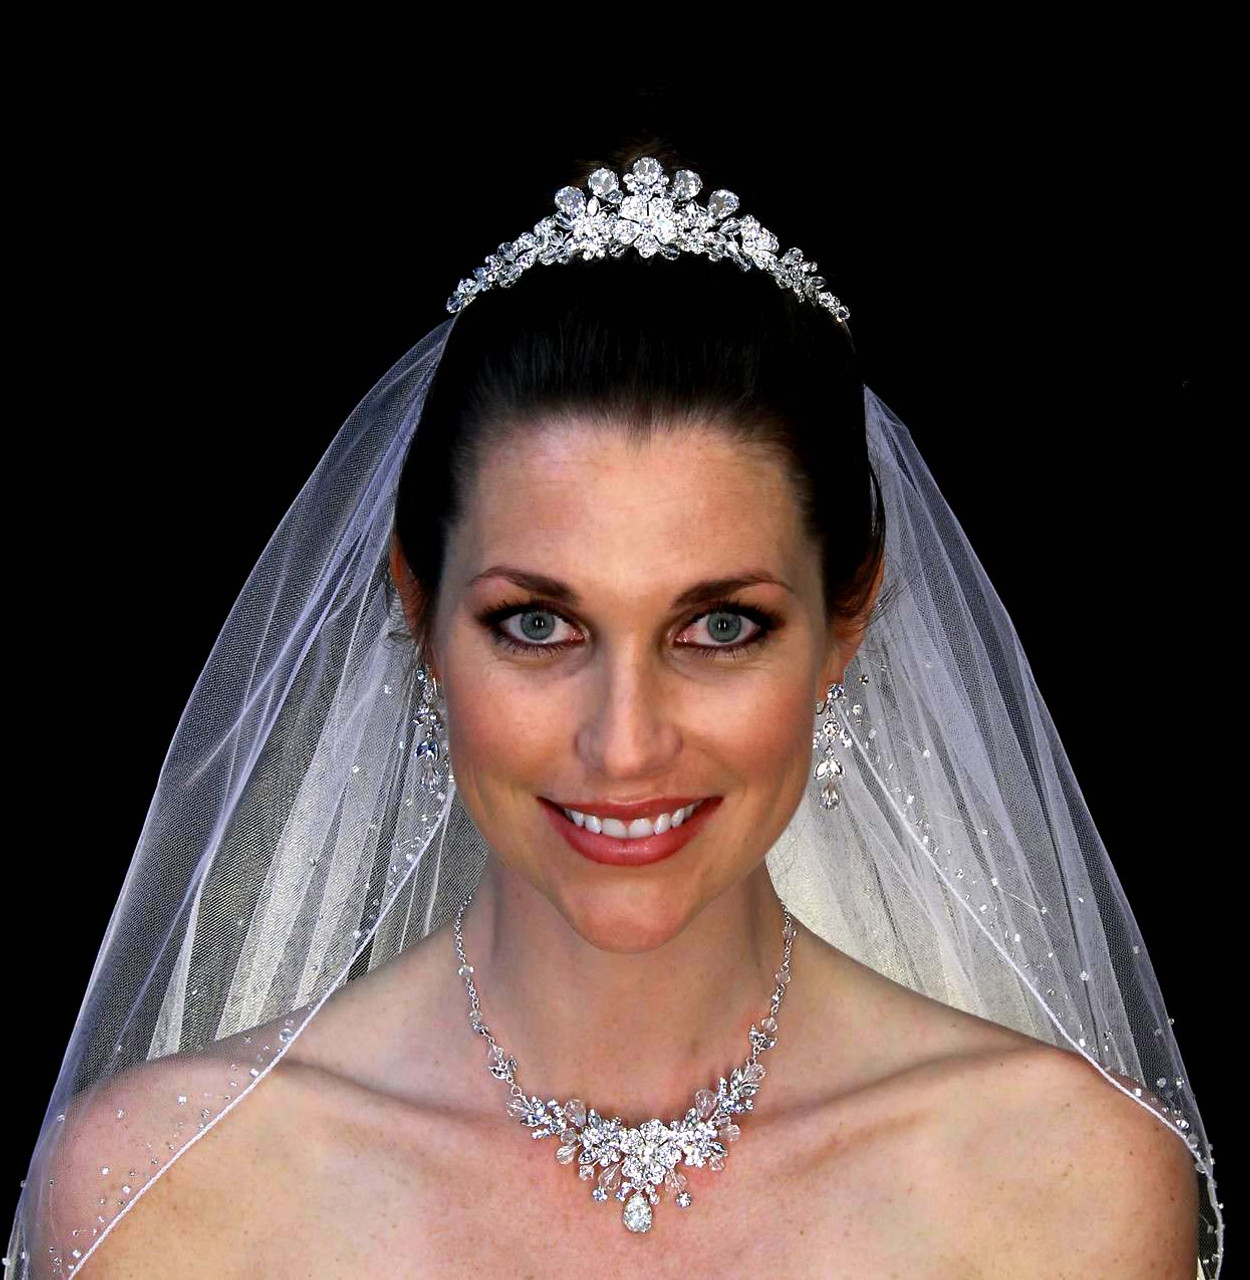 Noelle & Ava - Luxurious Tiara With Plush Hand Wired Petals And 5 Large Brilliant Teardrop Cubic Zirconium, Accented With Crystals